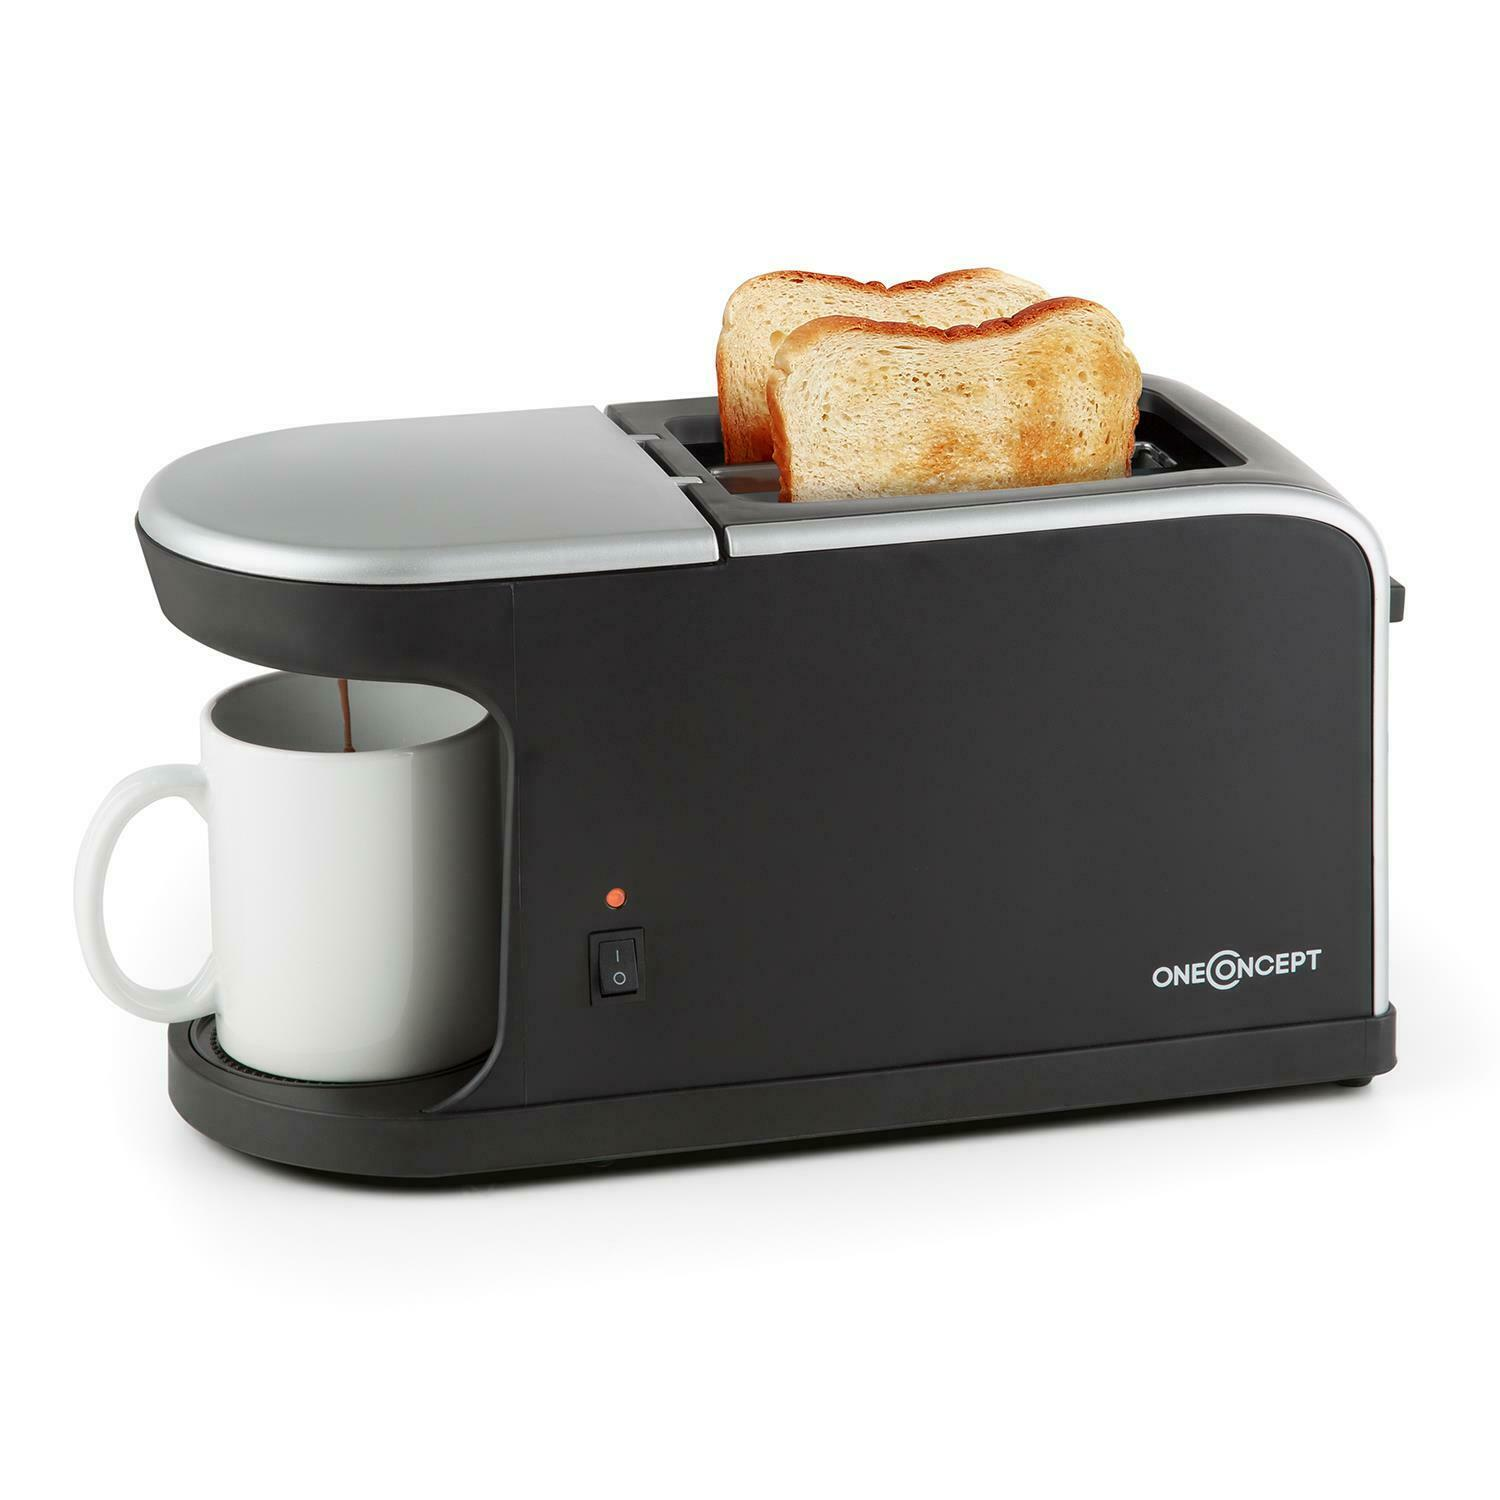 oneconcept quickie 2 in 1 doppelschlitz toaster mini kaffeemaschine inkl tasse eur 31 99. Black Bedroom Furniture Sets. Home Design Ideas